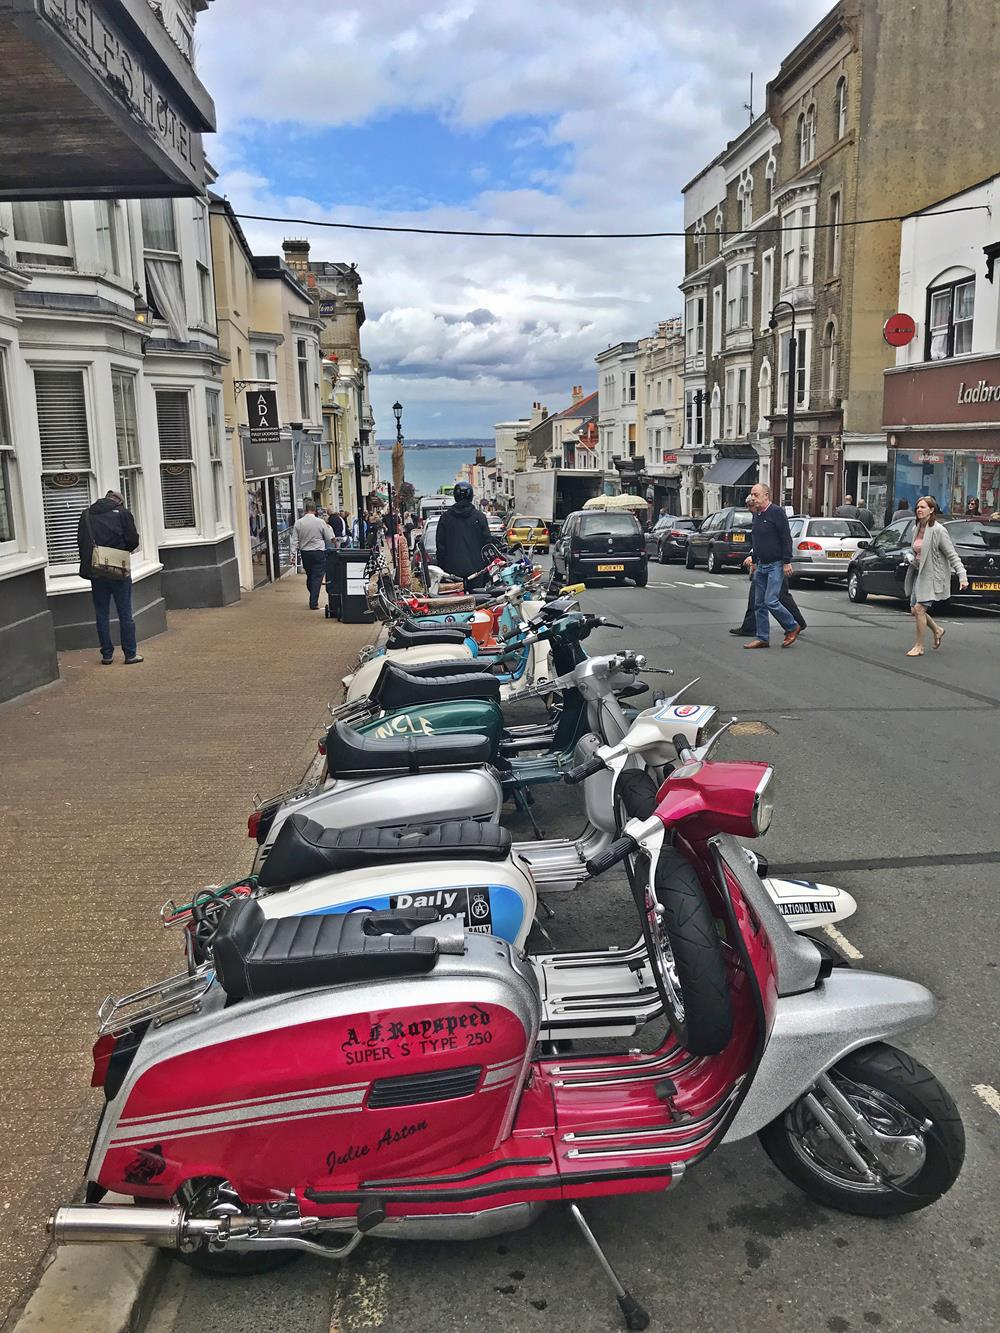 View down Union Street in Ryde with a pink Arthur Francis Lambretta in the foreground